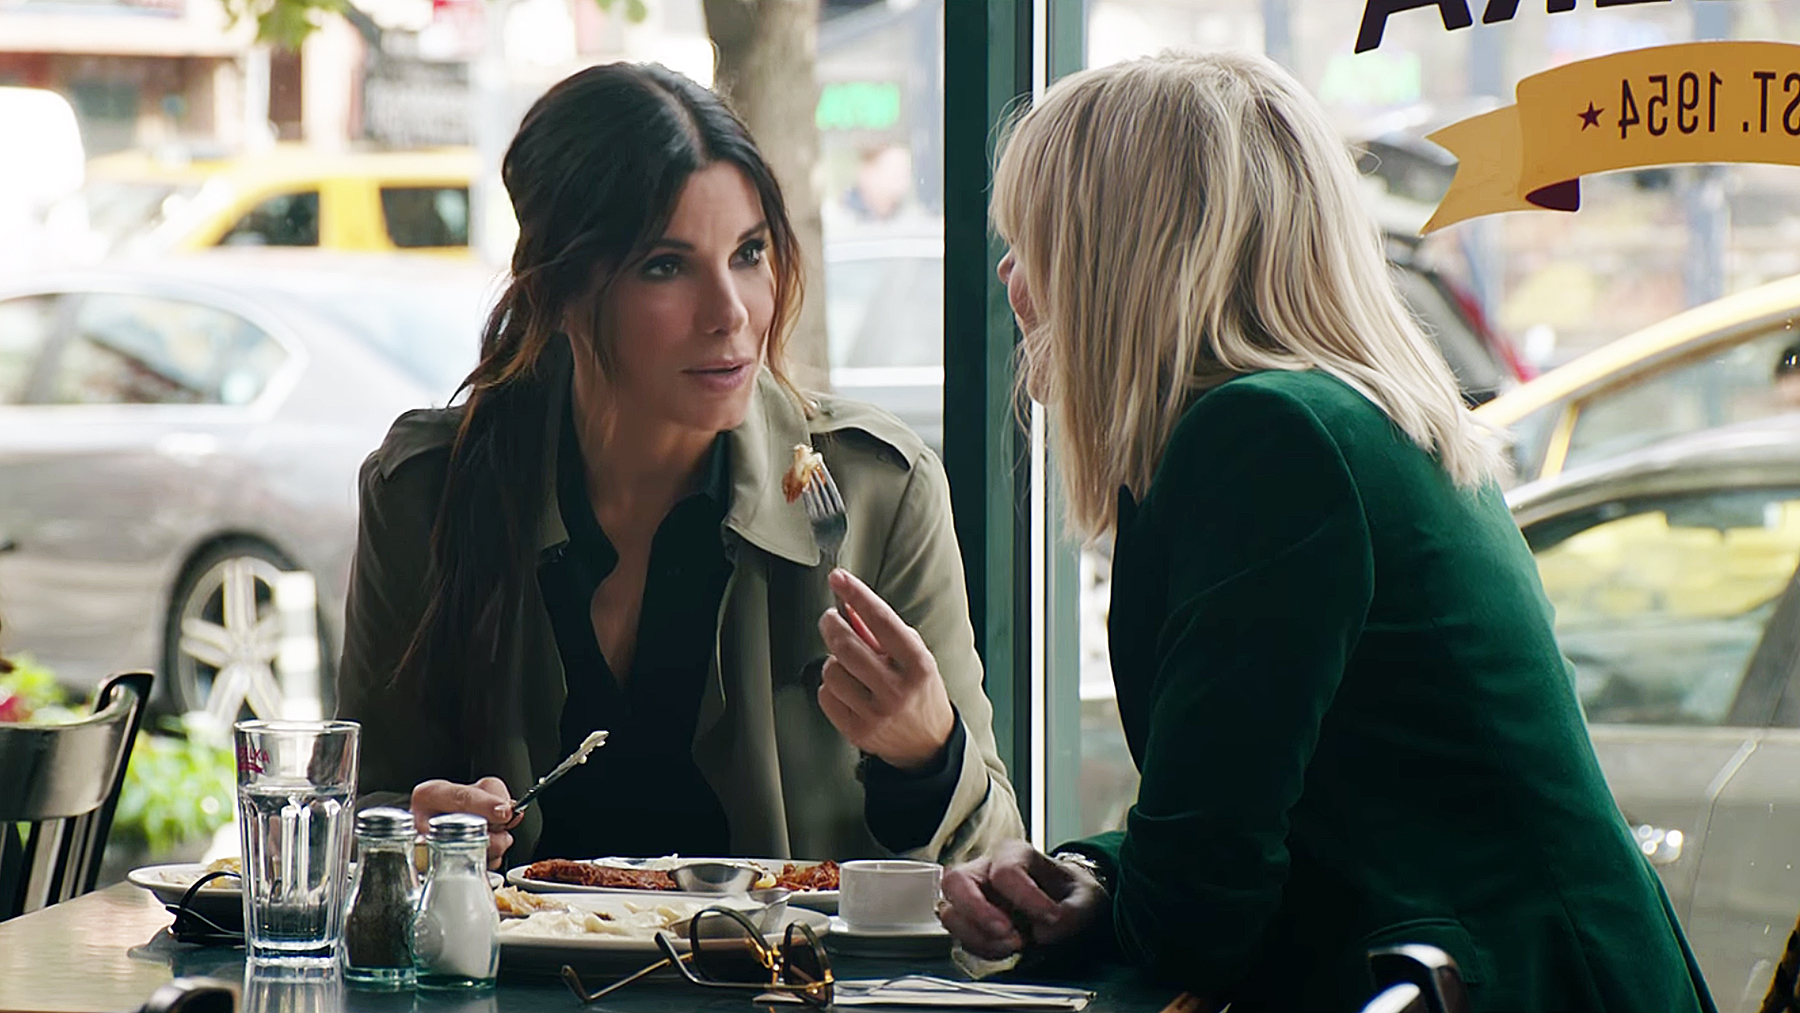 'Ocean's 8' trailer: Hint of a heist drama with a twist